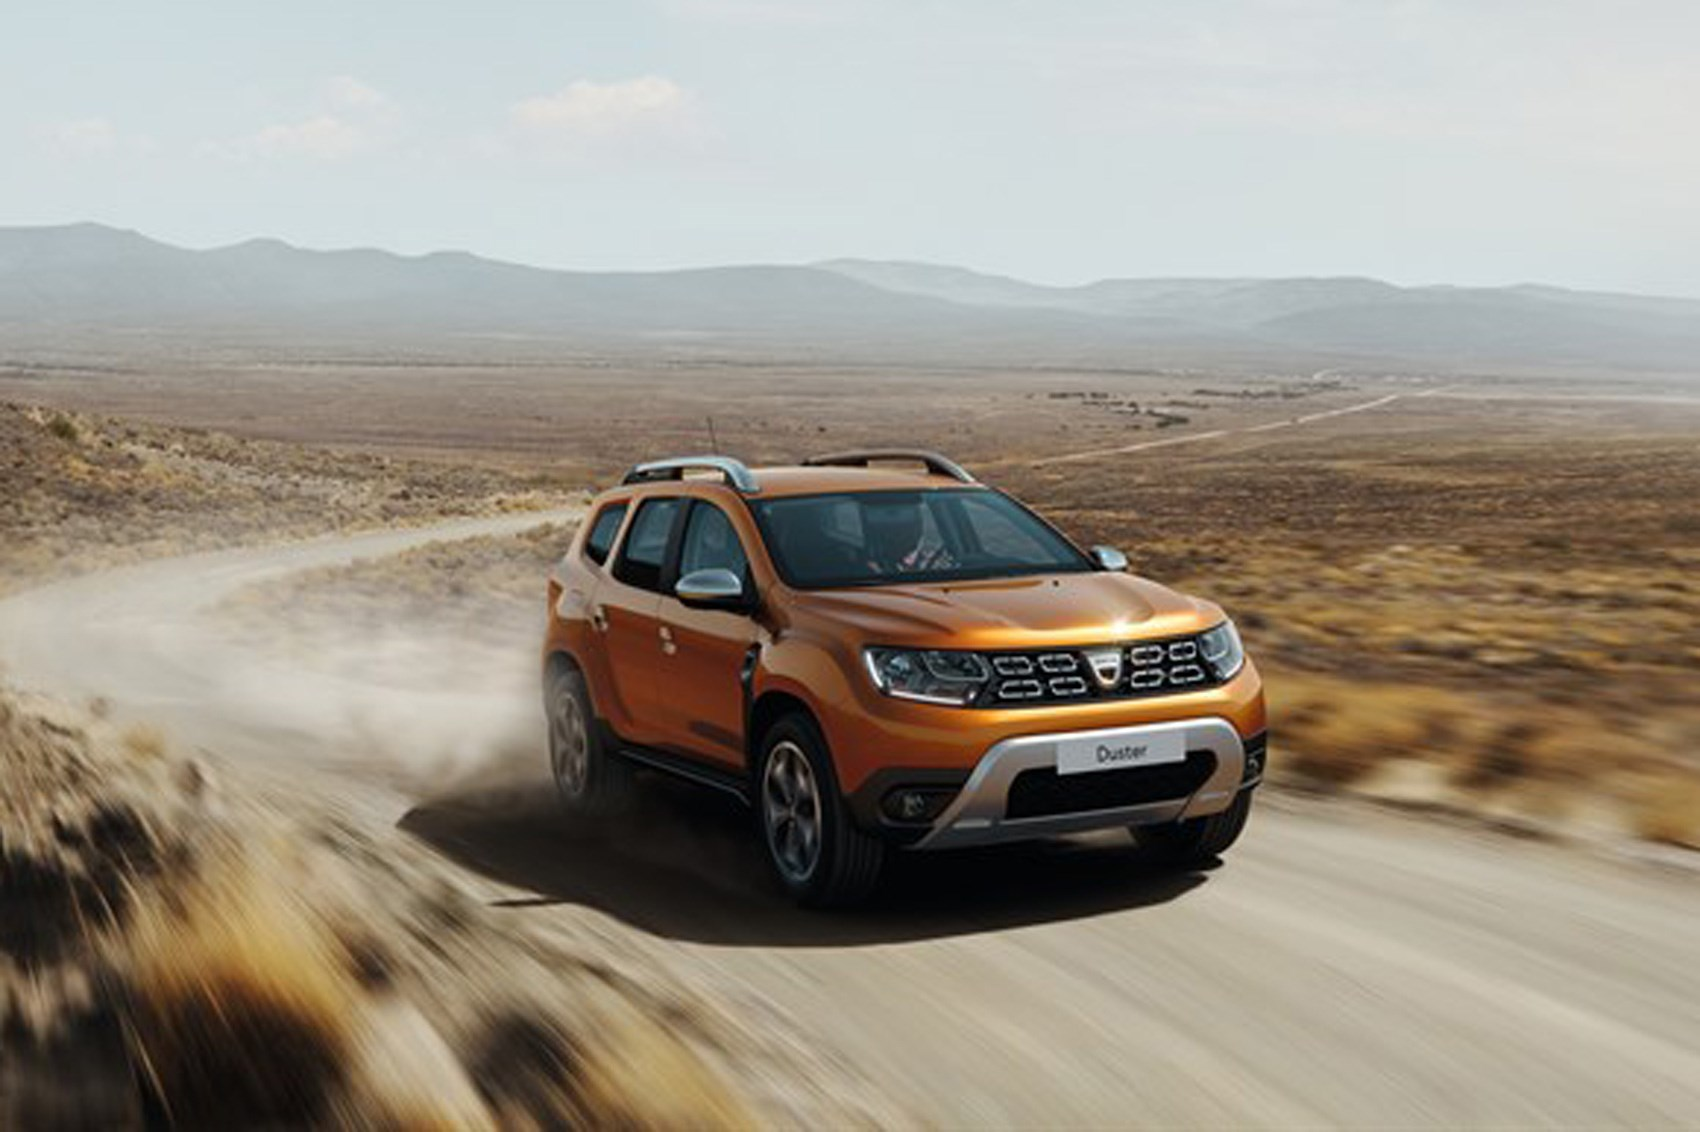 New 2018 Dacia Duster Revealed Pictures Specs Details Car Magazine Hummer Neopo Original Suede Leather This Is The Honest